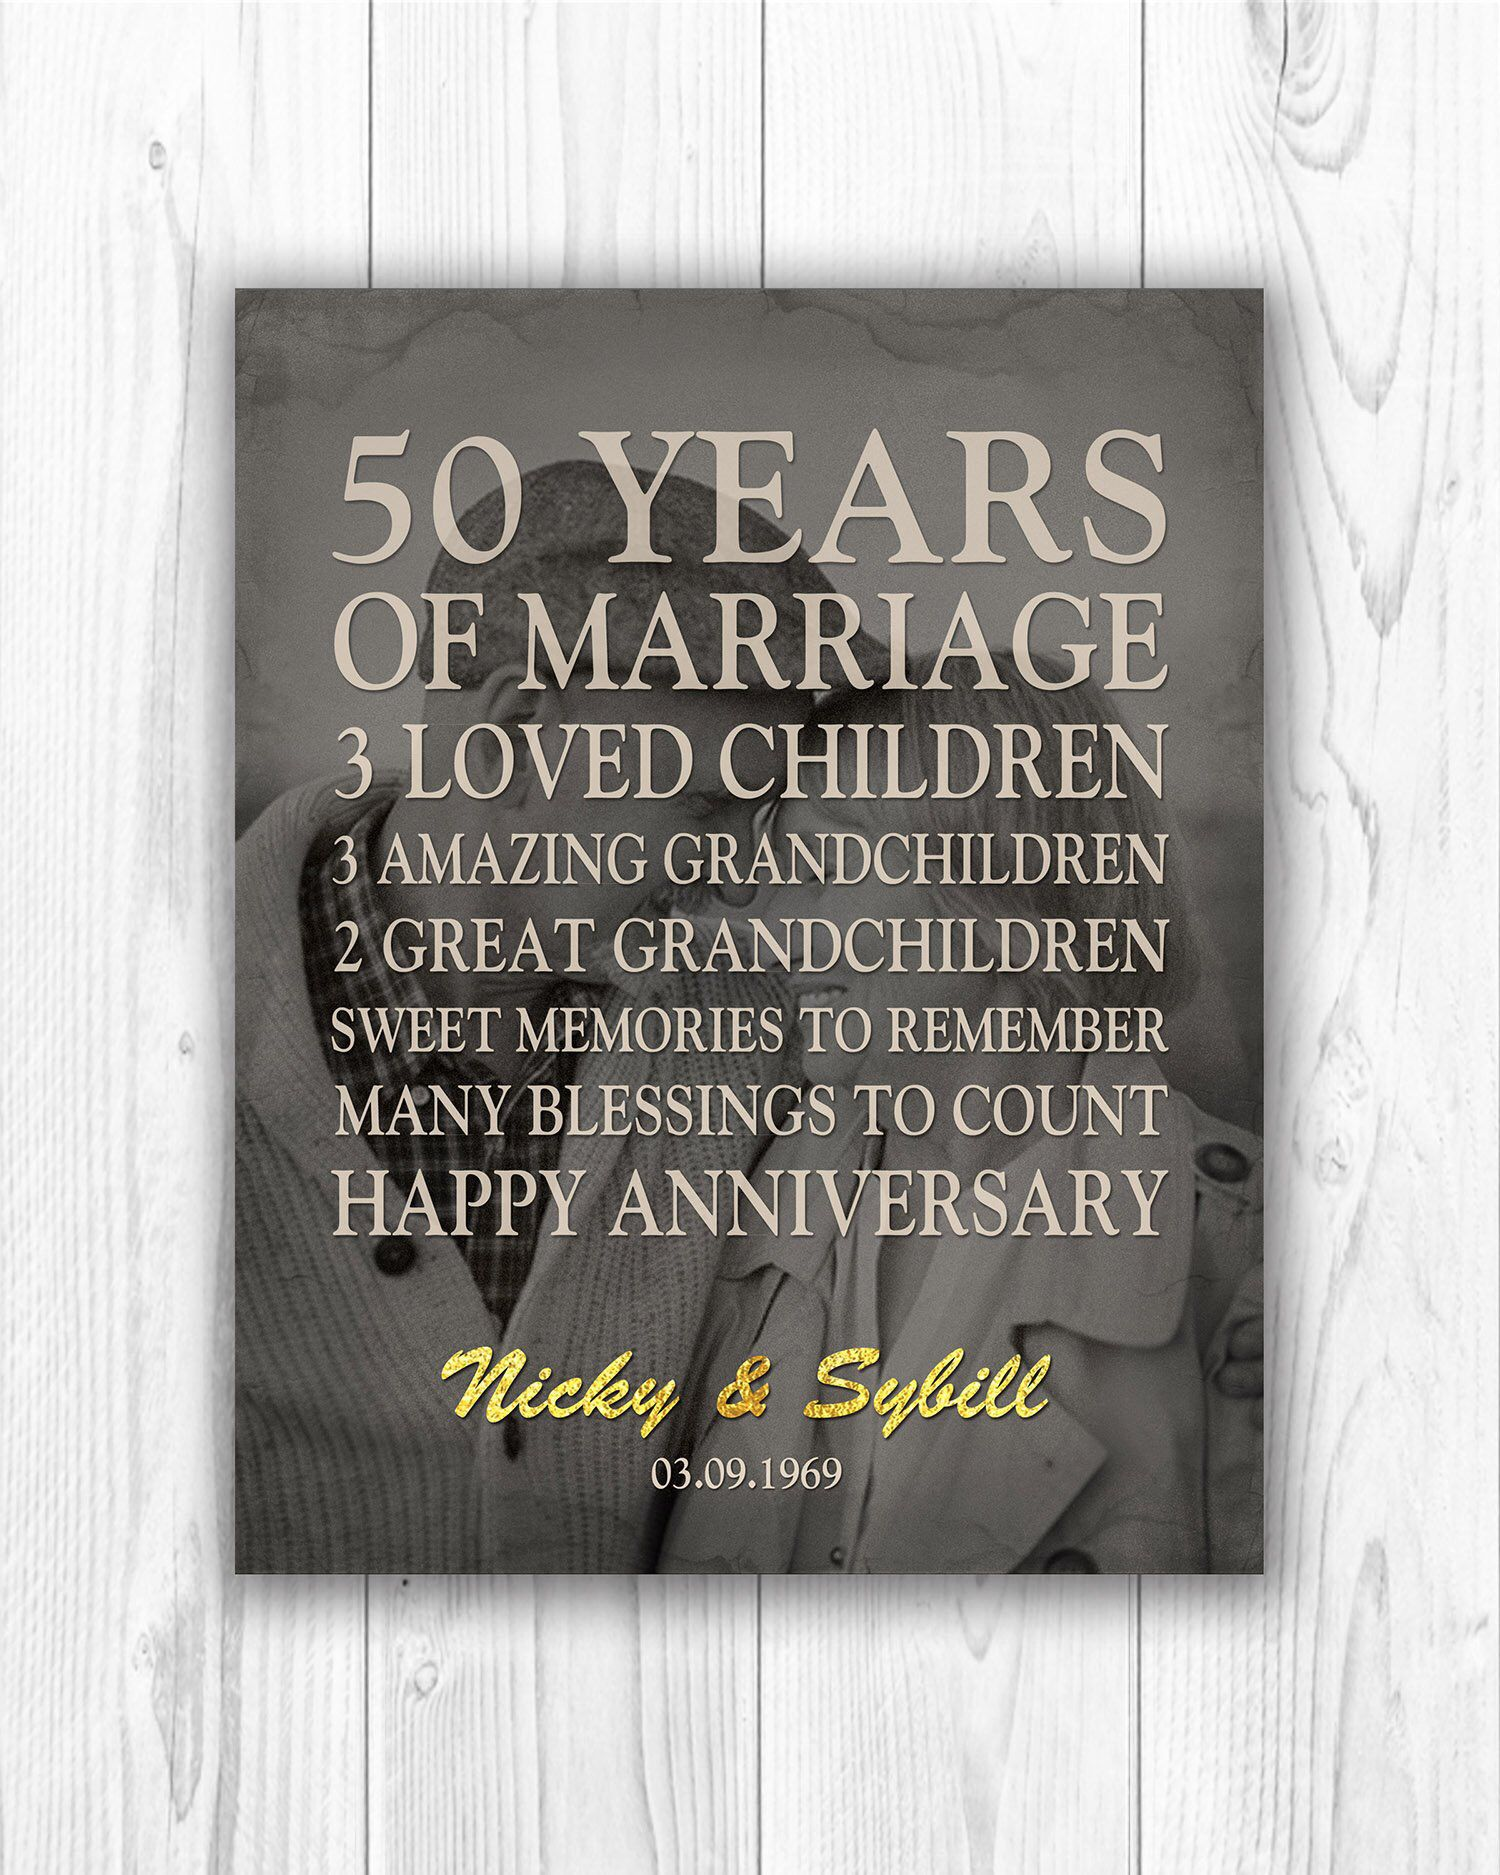 Gifts For Grandparents 50th Wedding Anniversary: Pin On Anniversary Gift Ideas